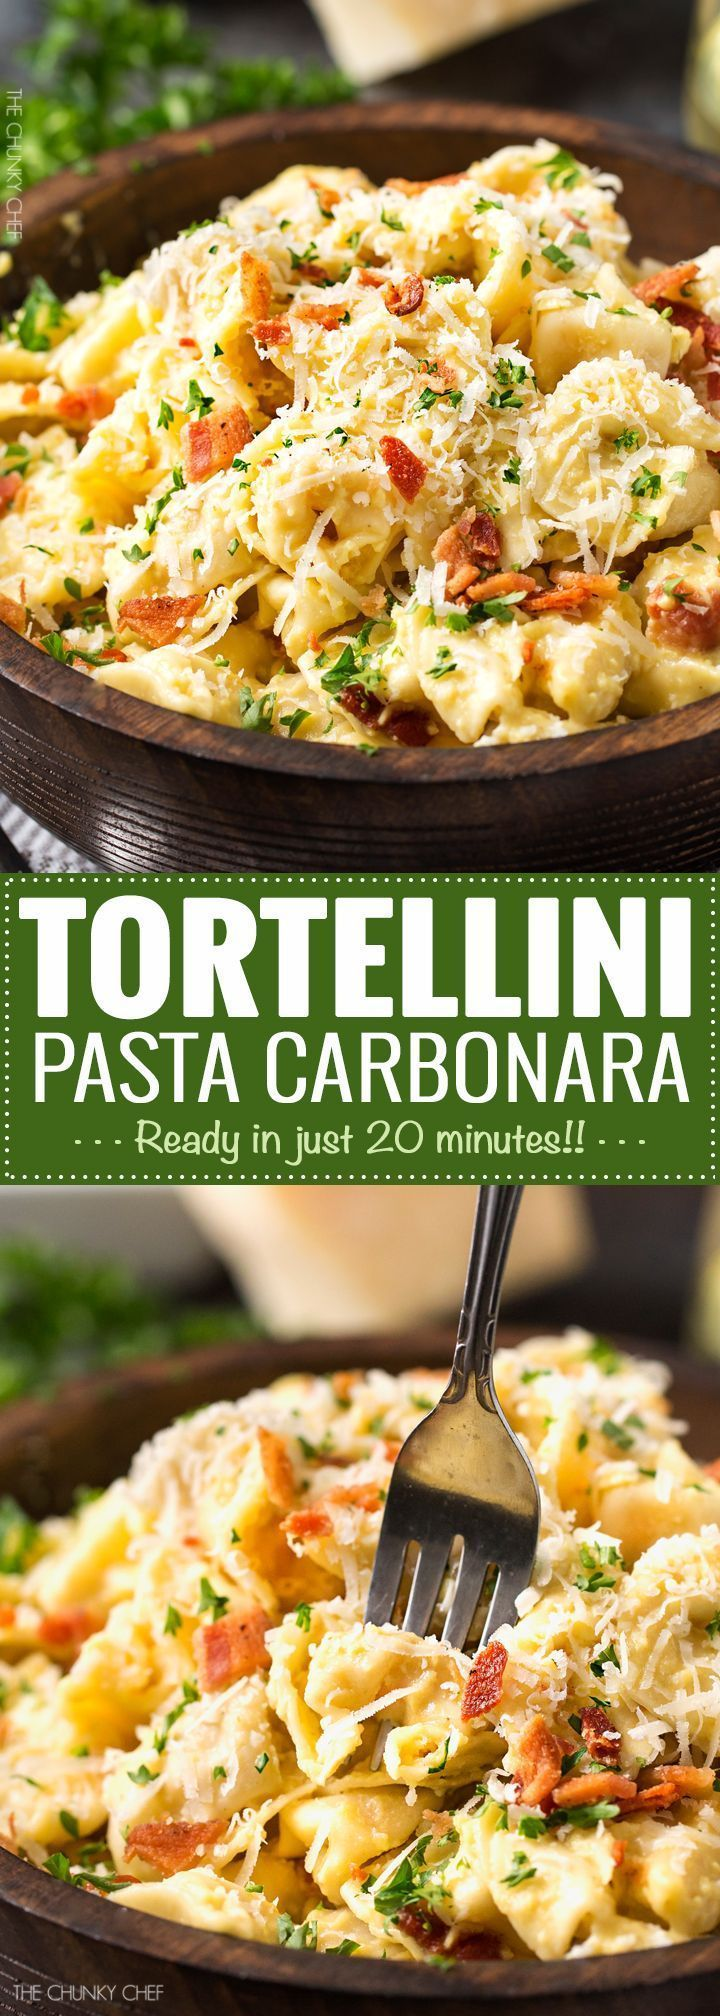 20 Minute Tortellini Pasta Carbonara   Cheese tortellini pasta is coated in a rich carbonara sauce, sprinkled with bacon and Parmesan cheese. It's the perfect weeknight dinner!   http://thechunkychef.com